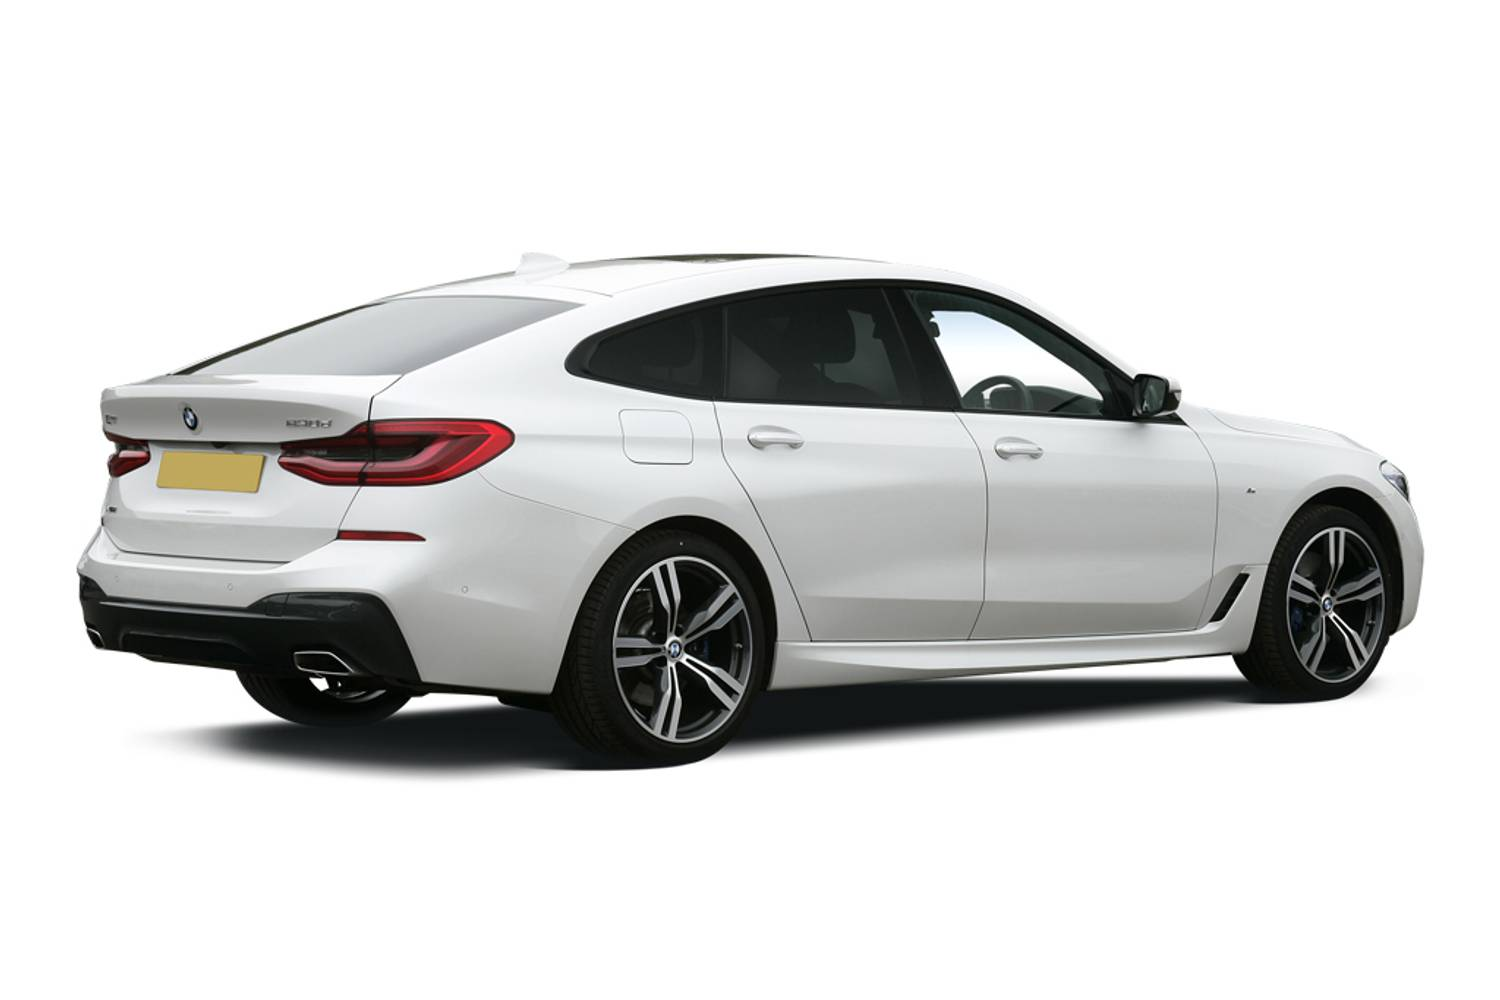 New BMW 6 Series Gran Turismo Diesel Hatchback 630d M Sport 5-door Auto  (2017-) for Sale